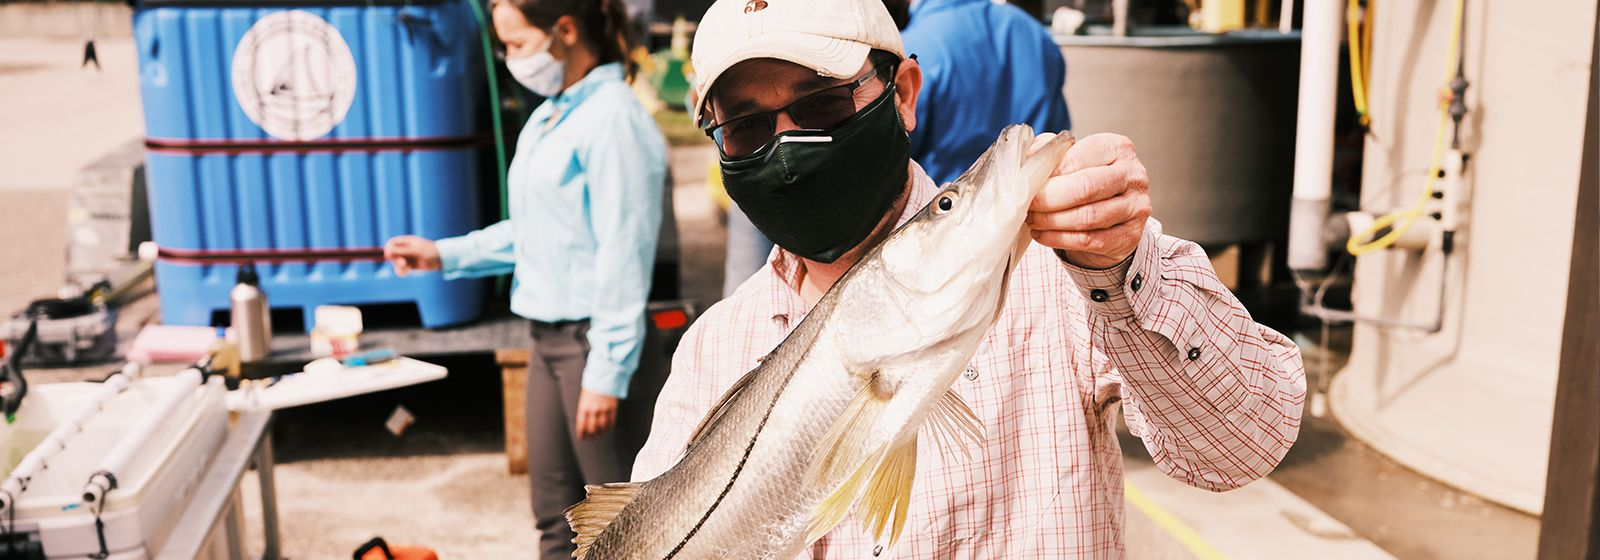 Snook are moving north, and scientists want to know why